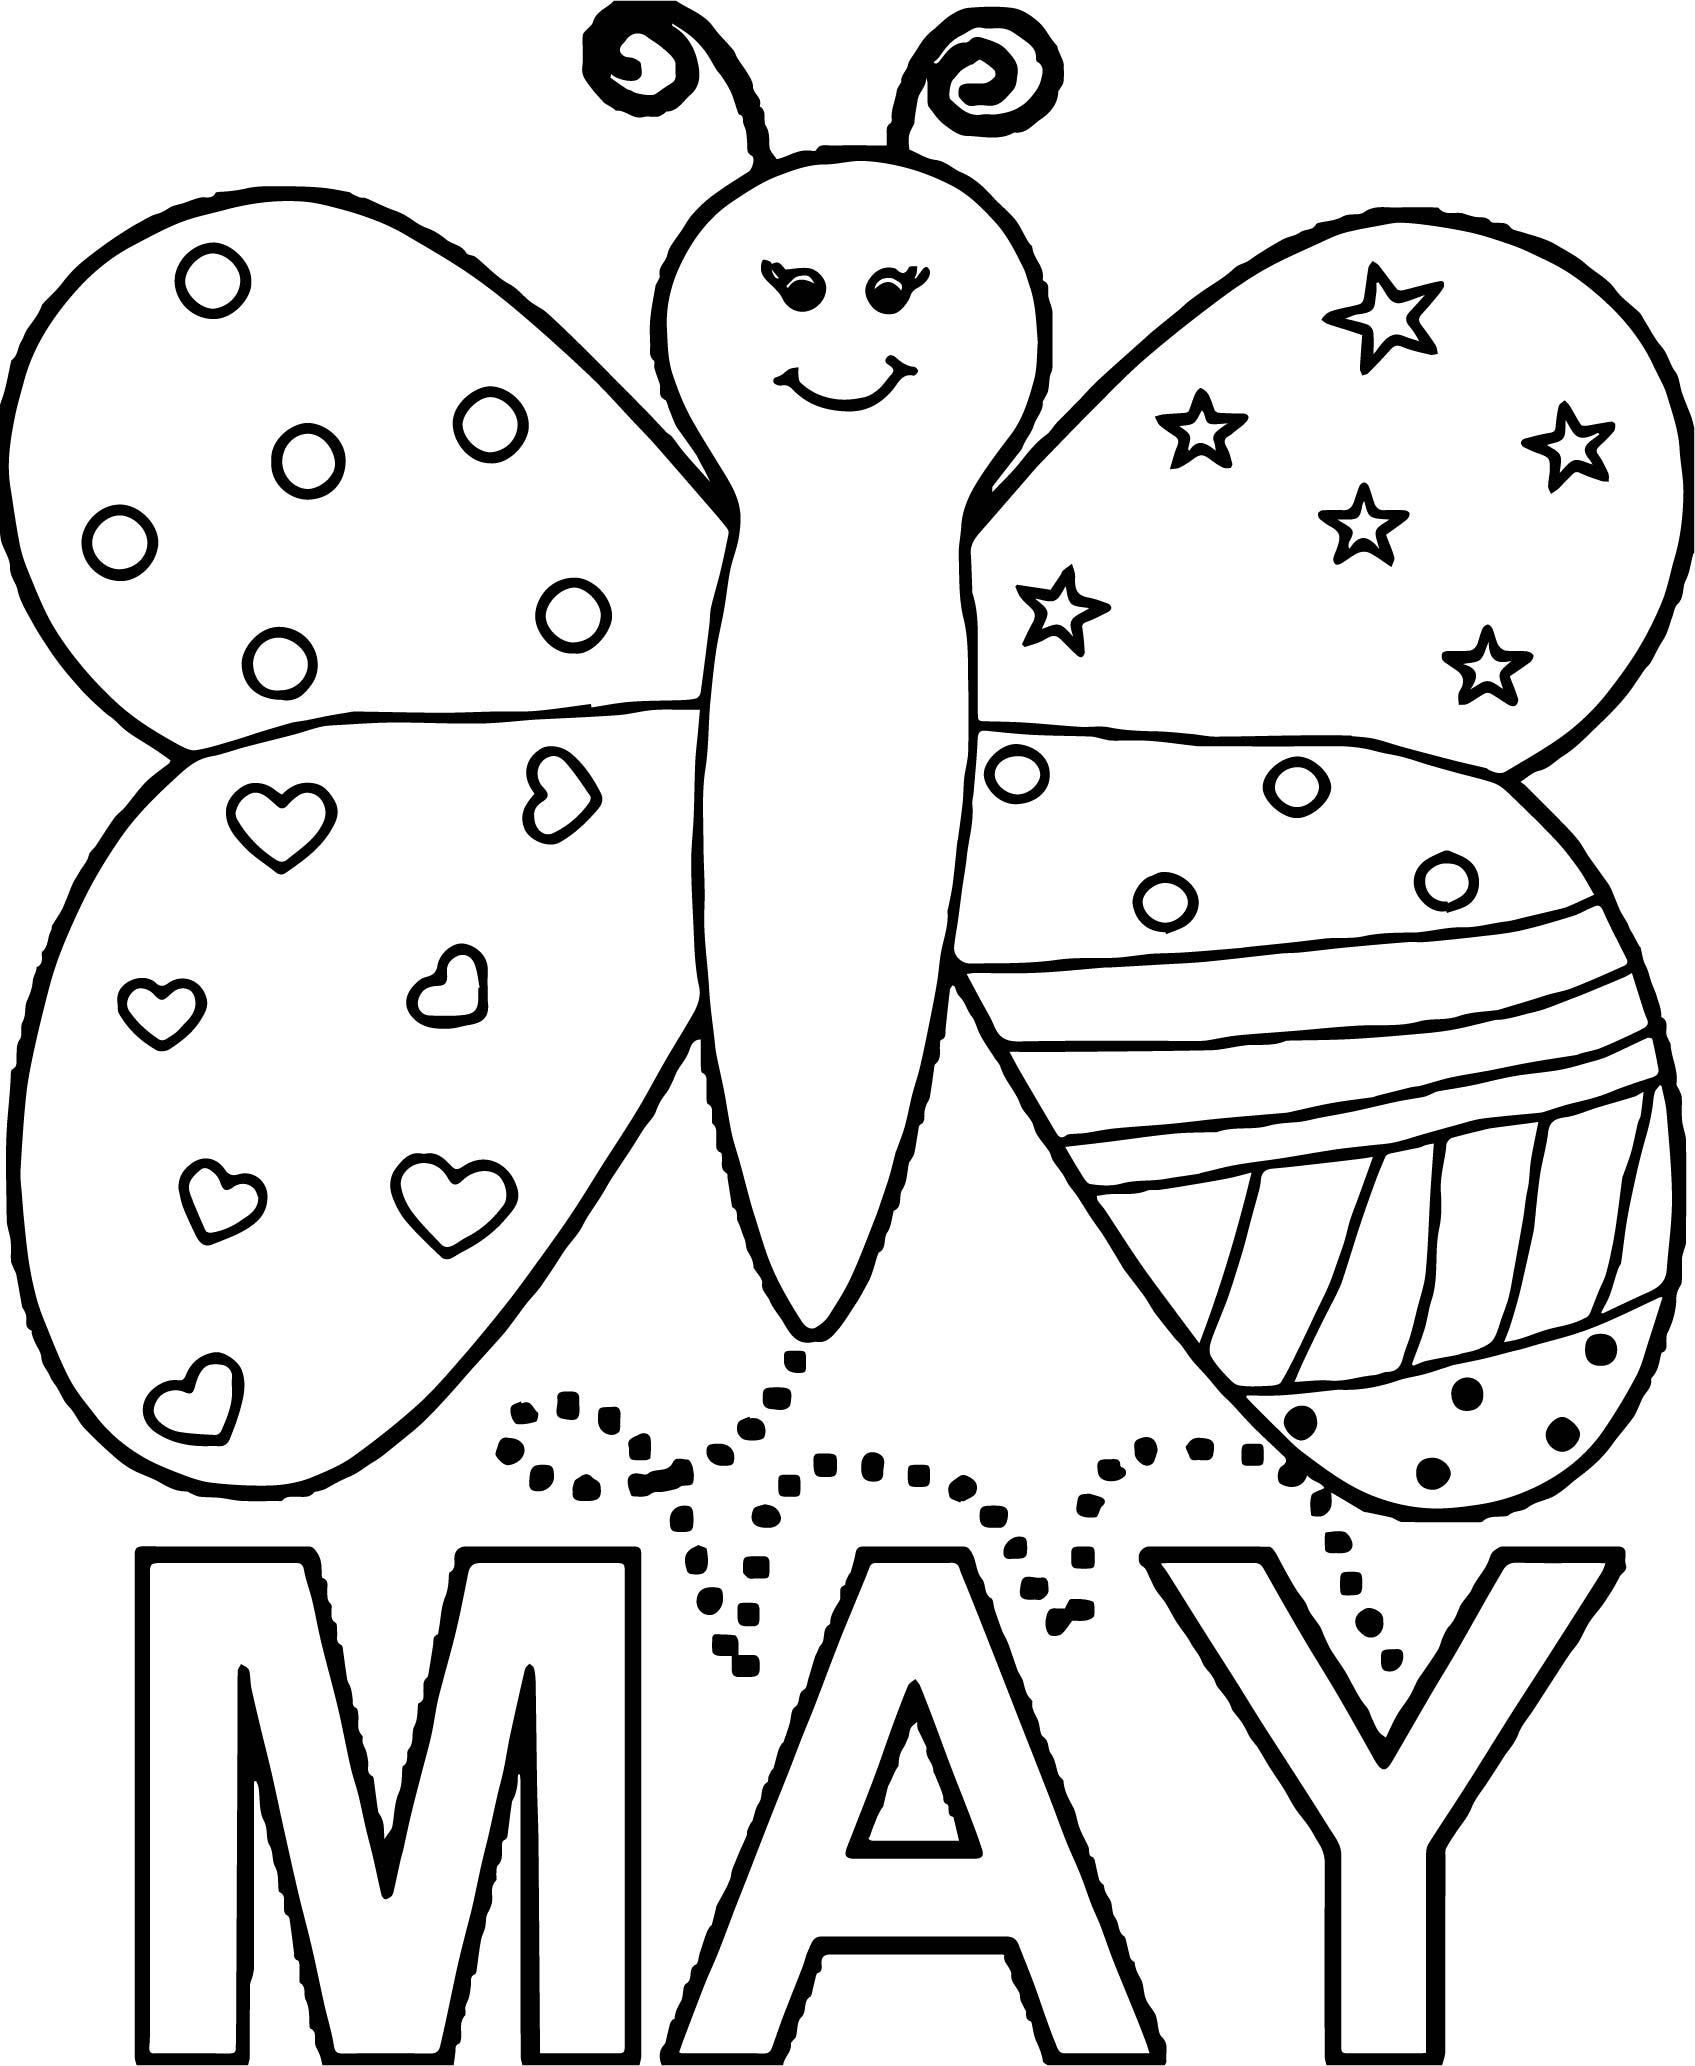 Coloring Pages for the month of May {Free Printable} | Coloring ... | 2066x1695